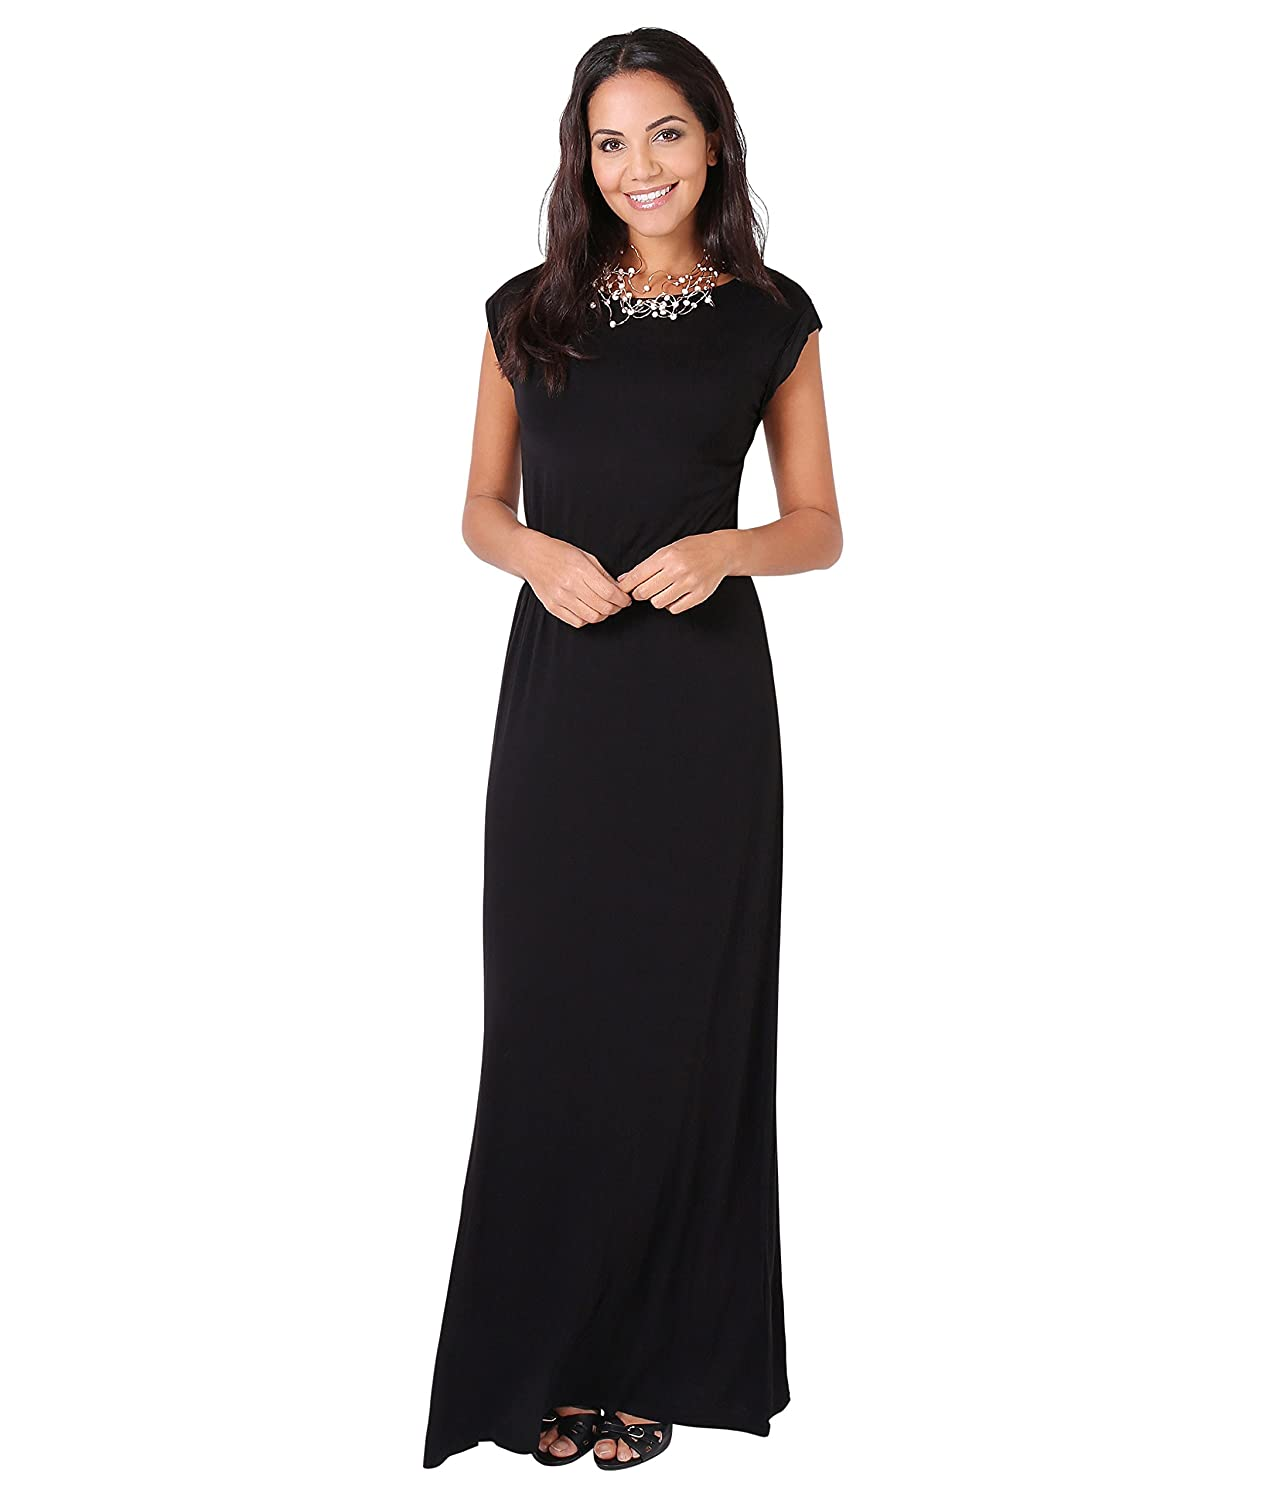 789113fba1a A mix of maxi dresses that is a must-have for your closet. Ideal for  Summer